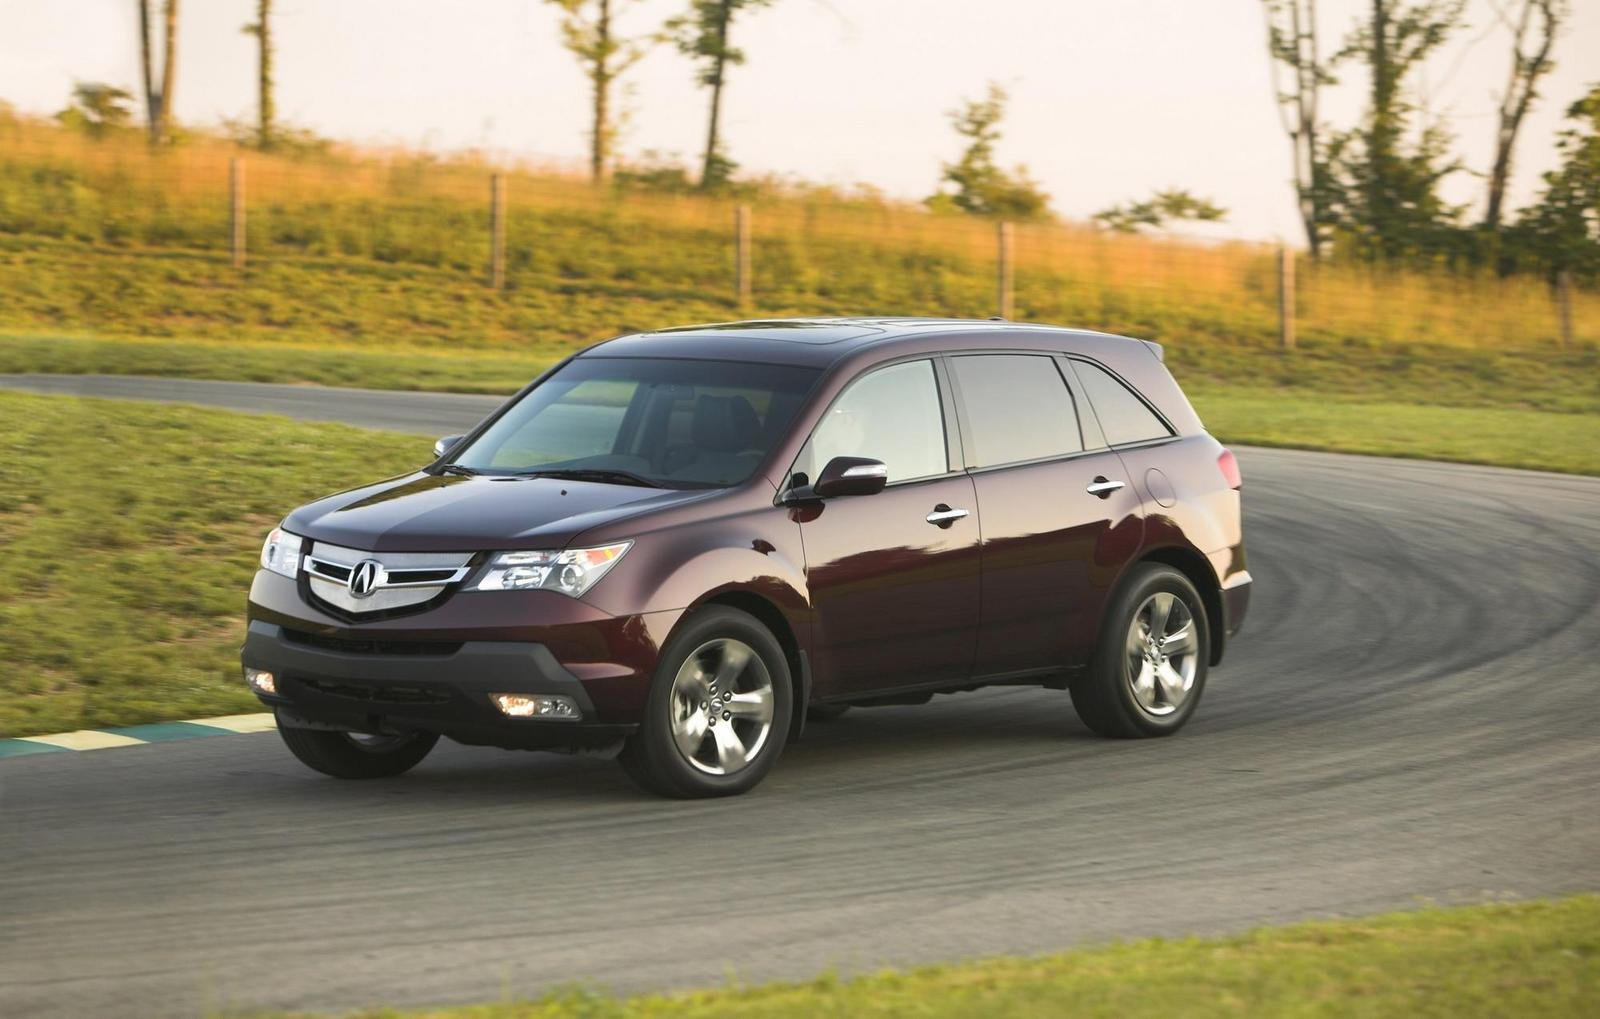 2009 acura mdx picture 299846 car review top speed. Black Bedroom Furniture Sets. Home Design Ideas